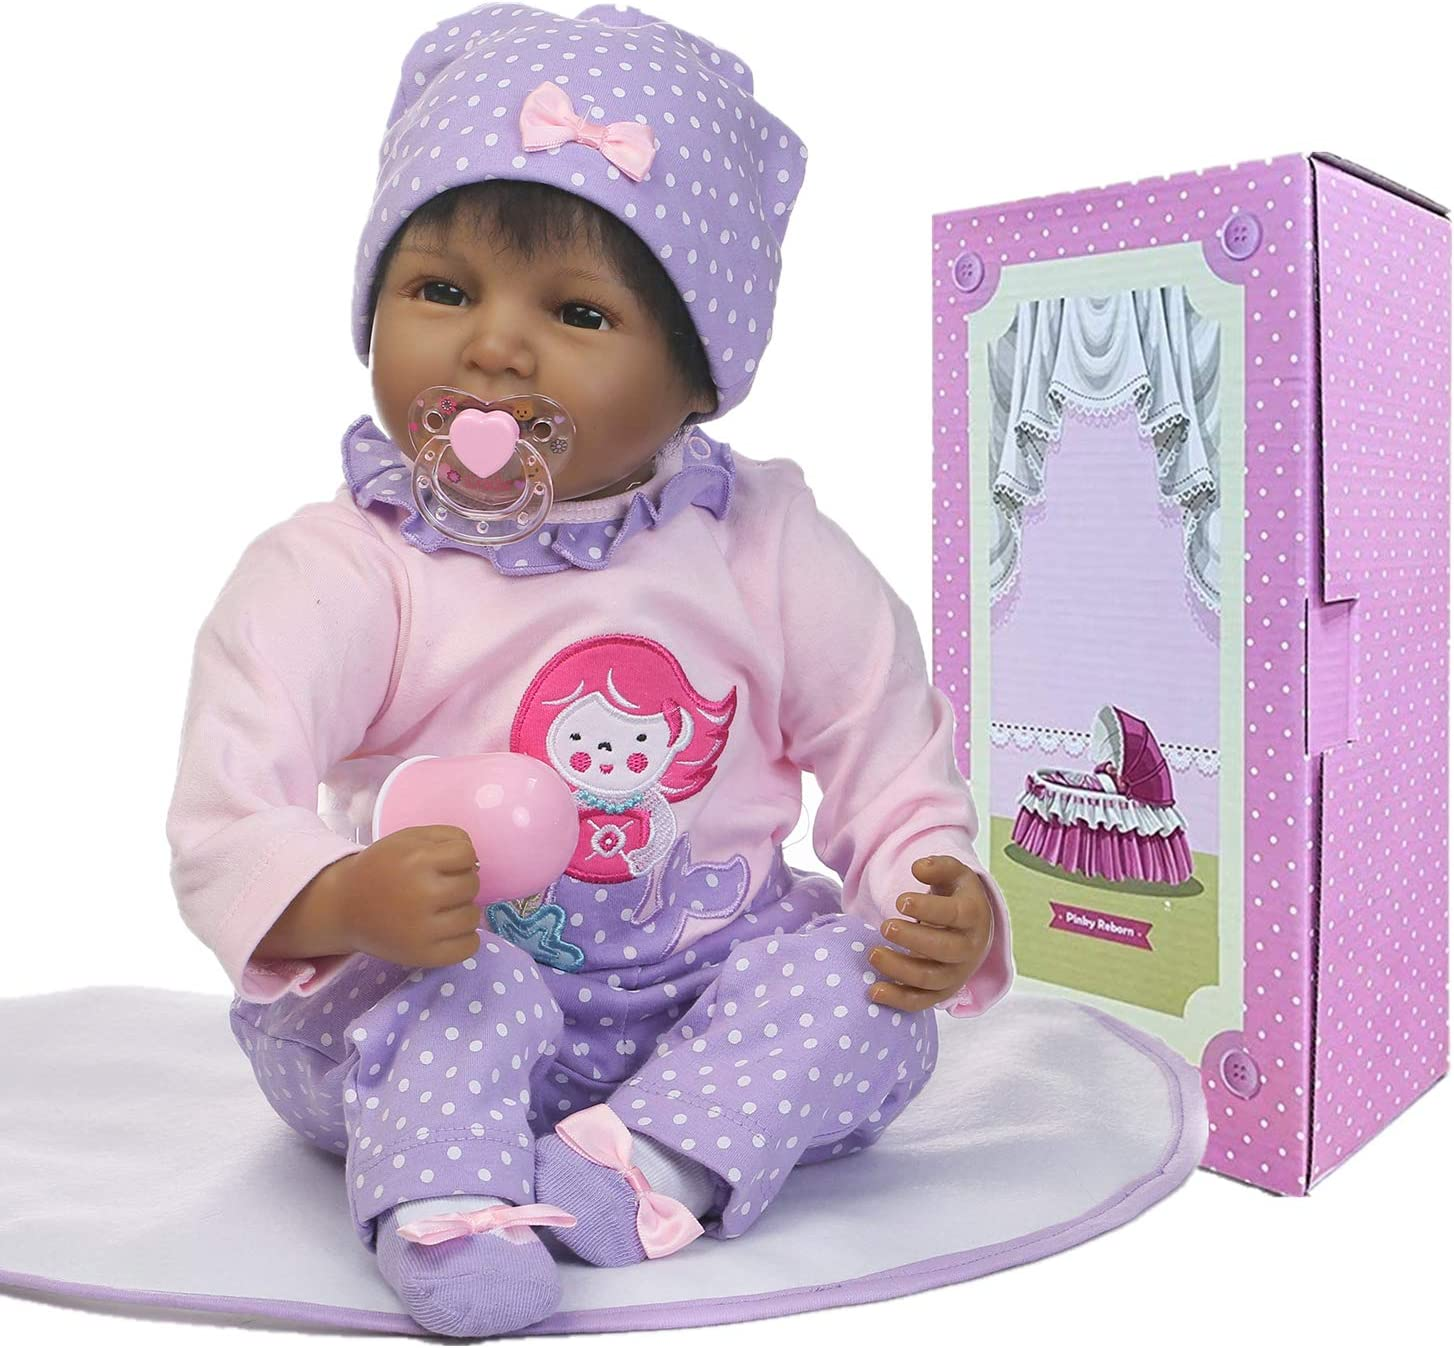 African American Reborn Baby Dolls Girl Weighted Fees free 70% OFF Outlet Handm Realistic